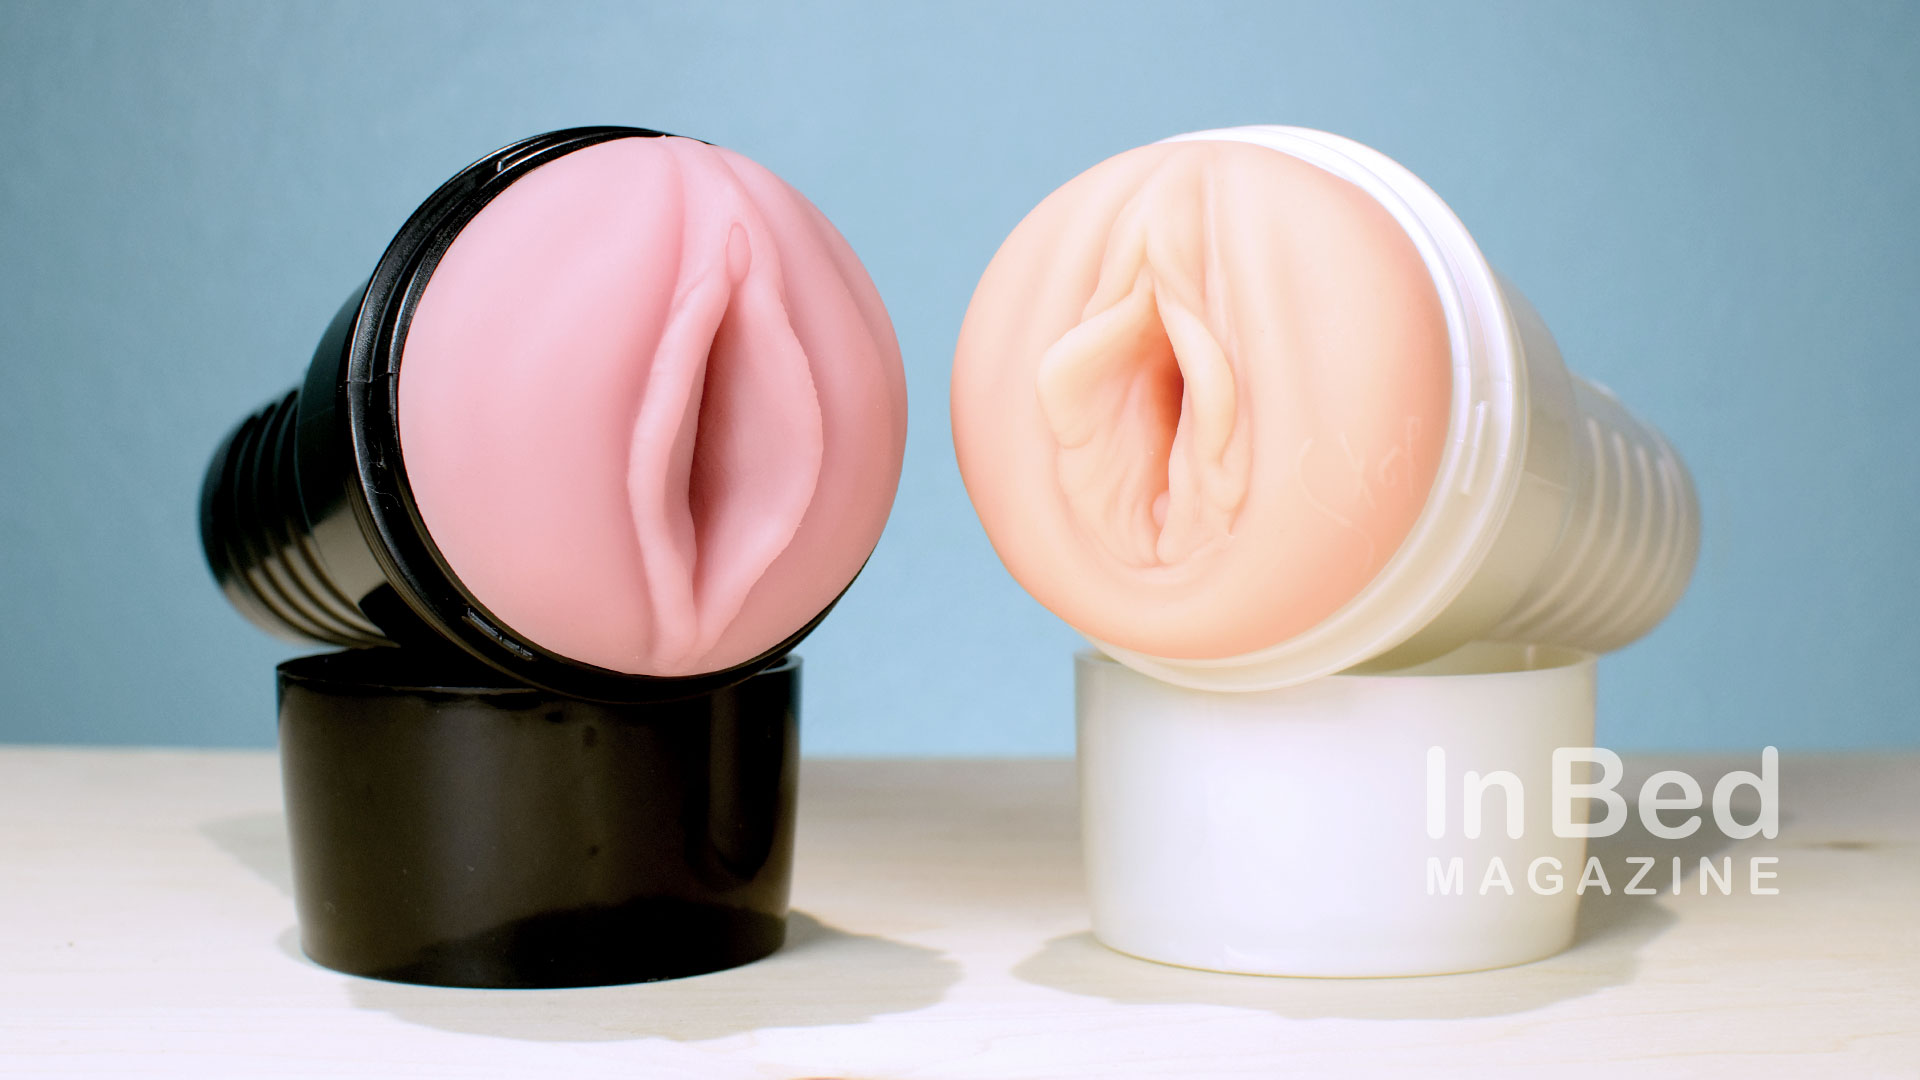 Fleshlight  Male Pleasure Products Price To Drop